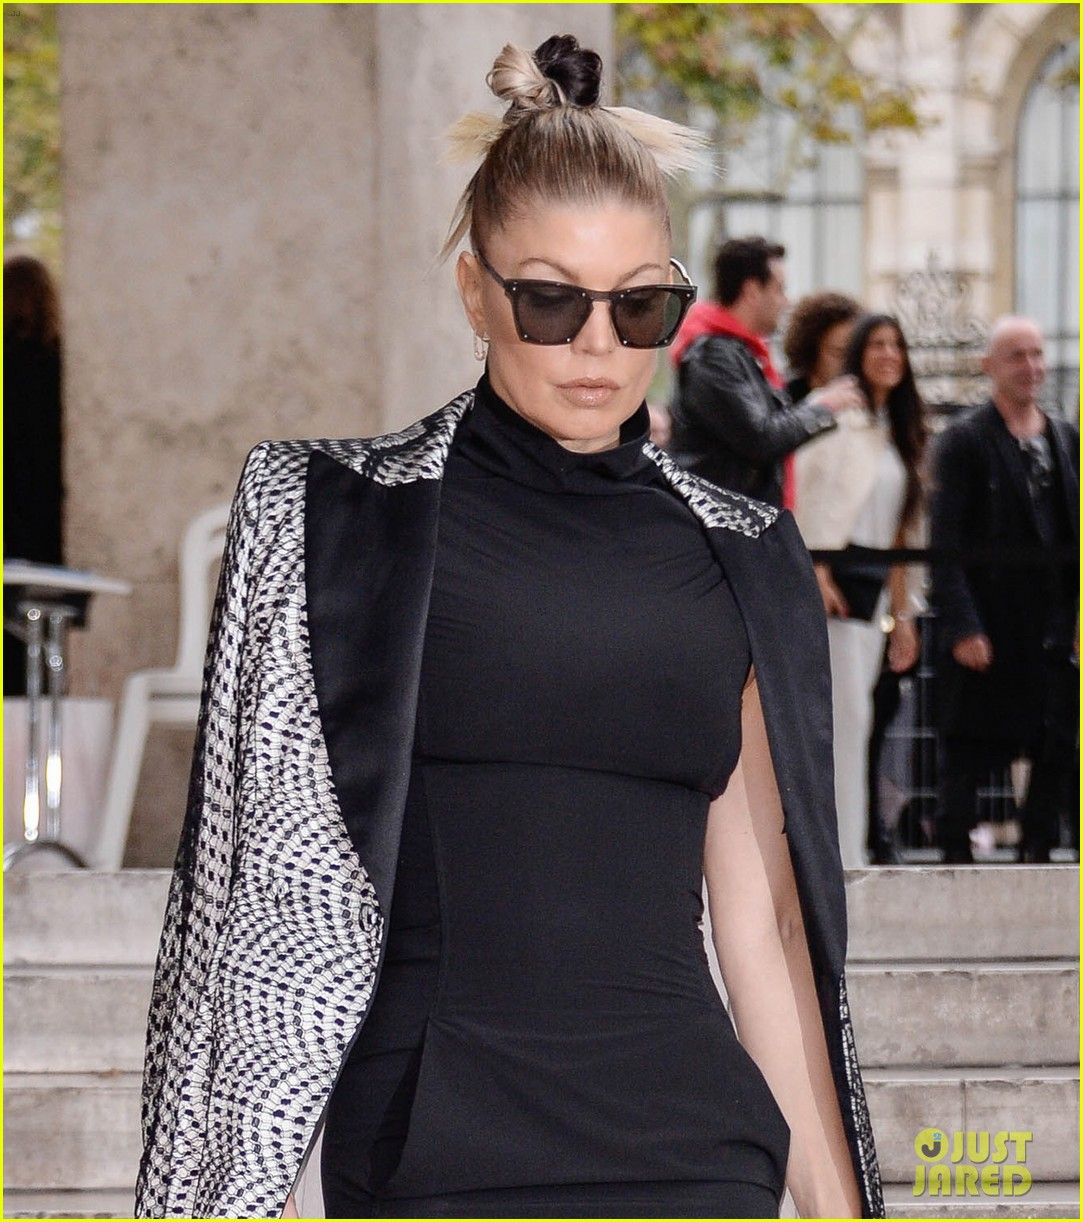 Fergie Wears A Dress With Pockets To Rick Owens Paris Show Photo 3965979 Fergie Pictures Just Jared